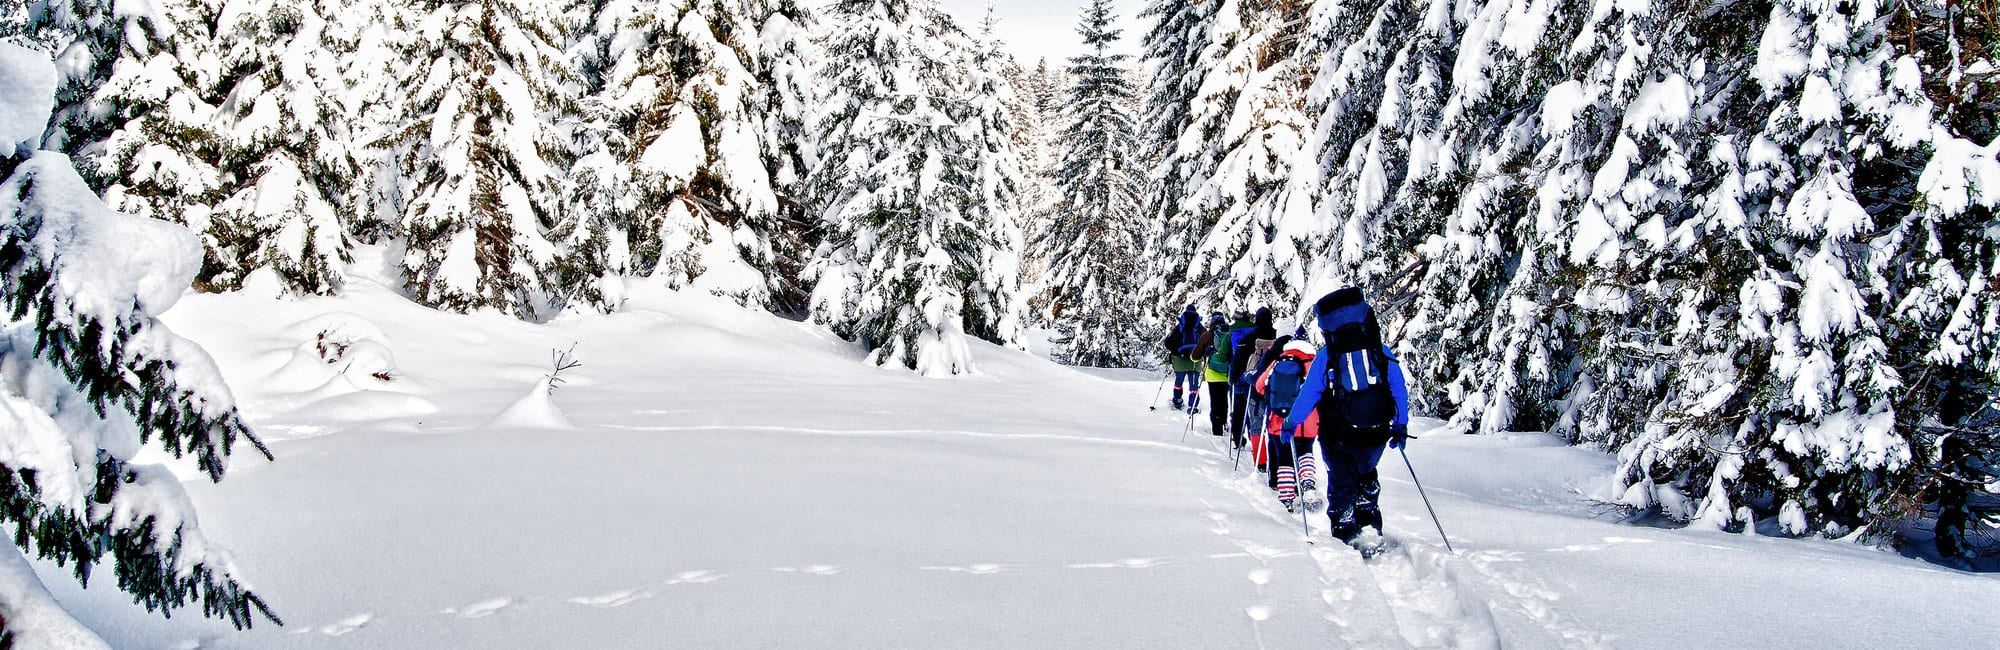 Group of snowshoe hiker in winter forest